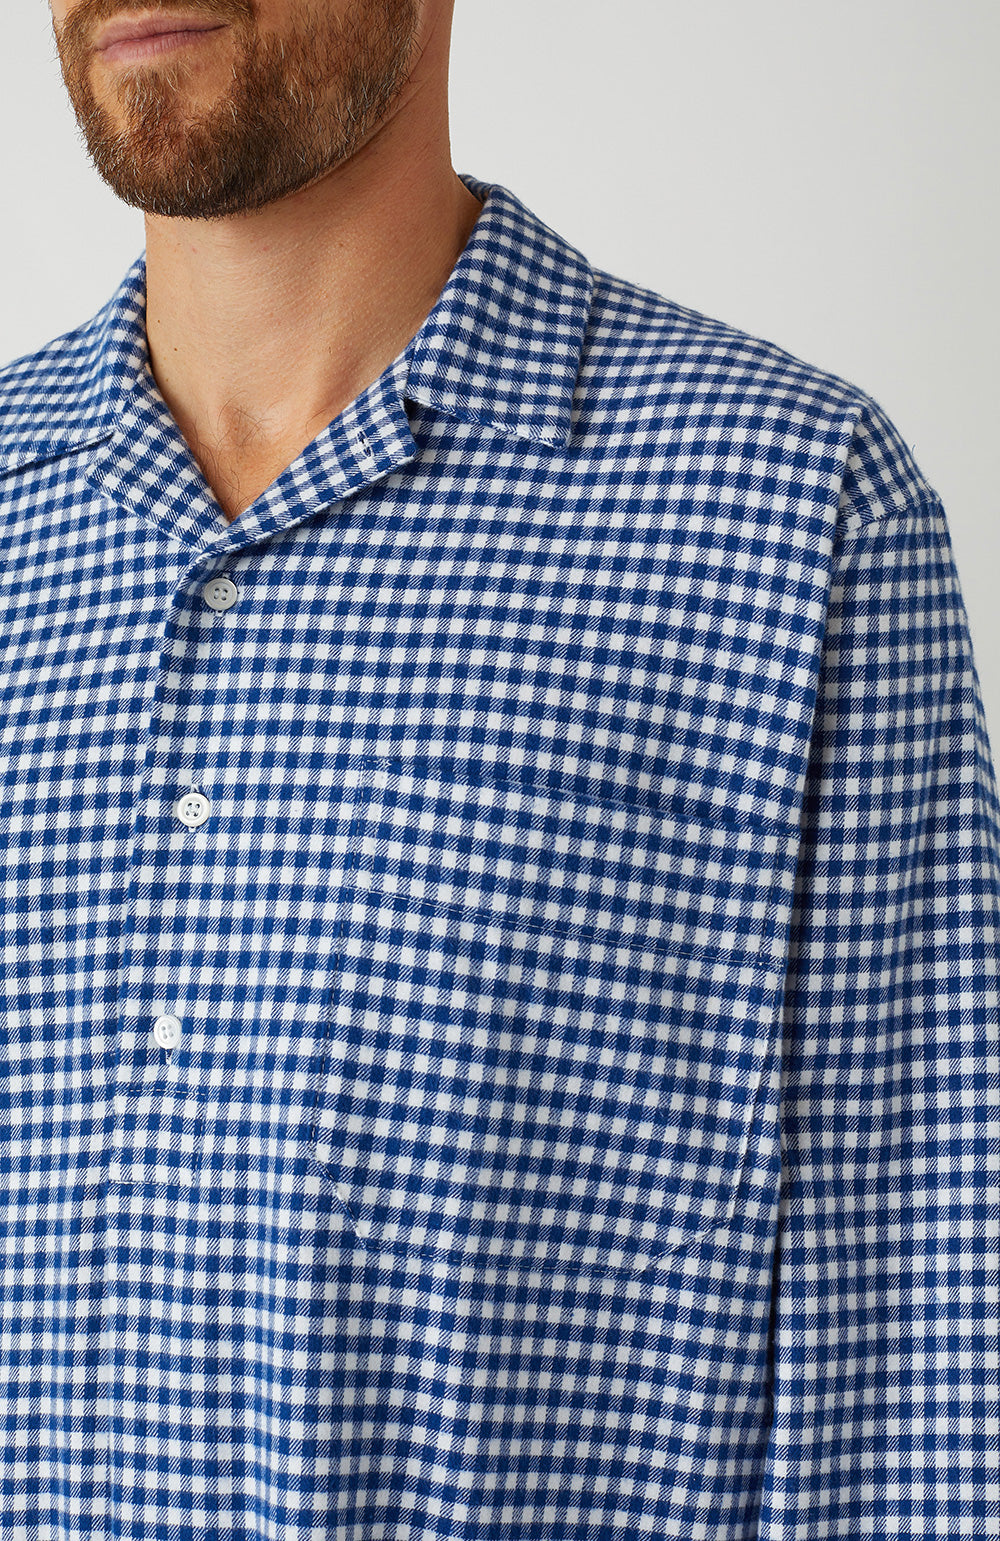 Brushed Cotton Navy Gingham Nightshirt | Bonsoir of London